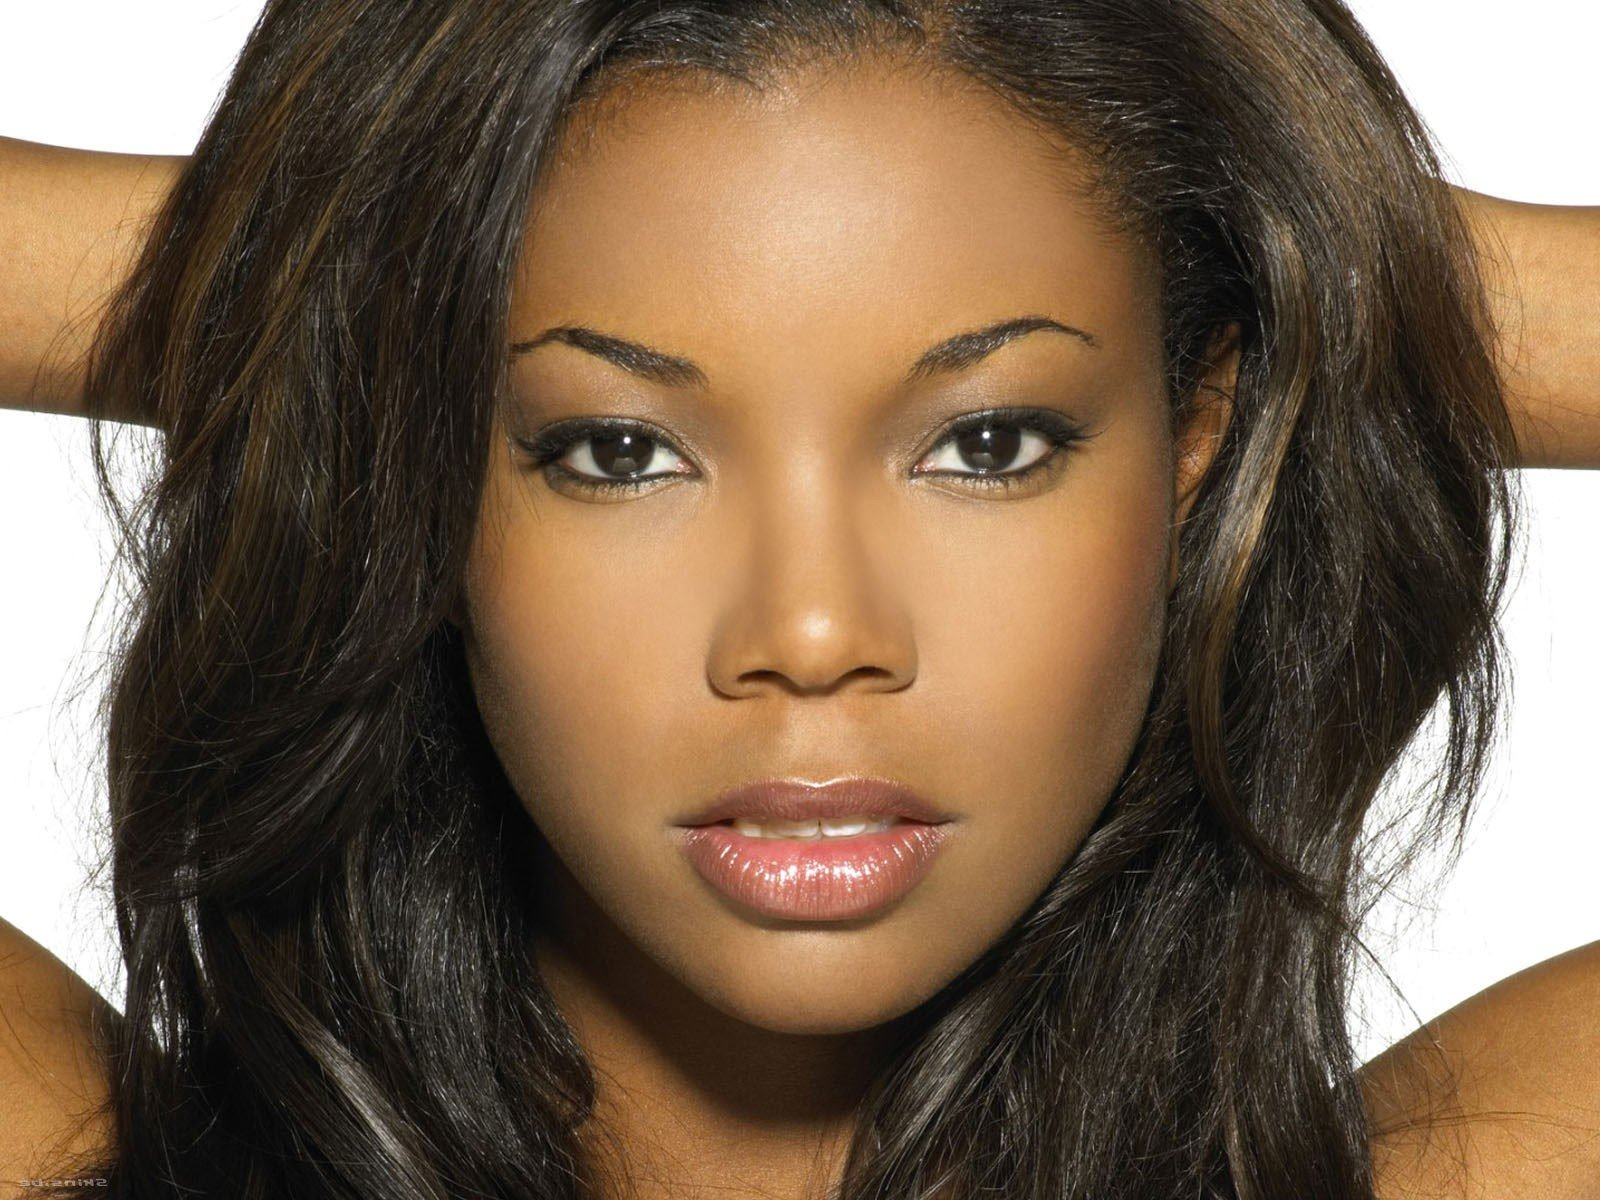 ebony, Women, Black, Gabrielle Union Wallpaper